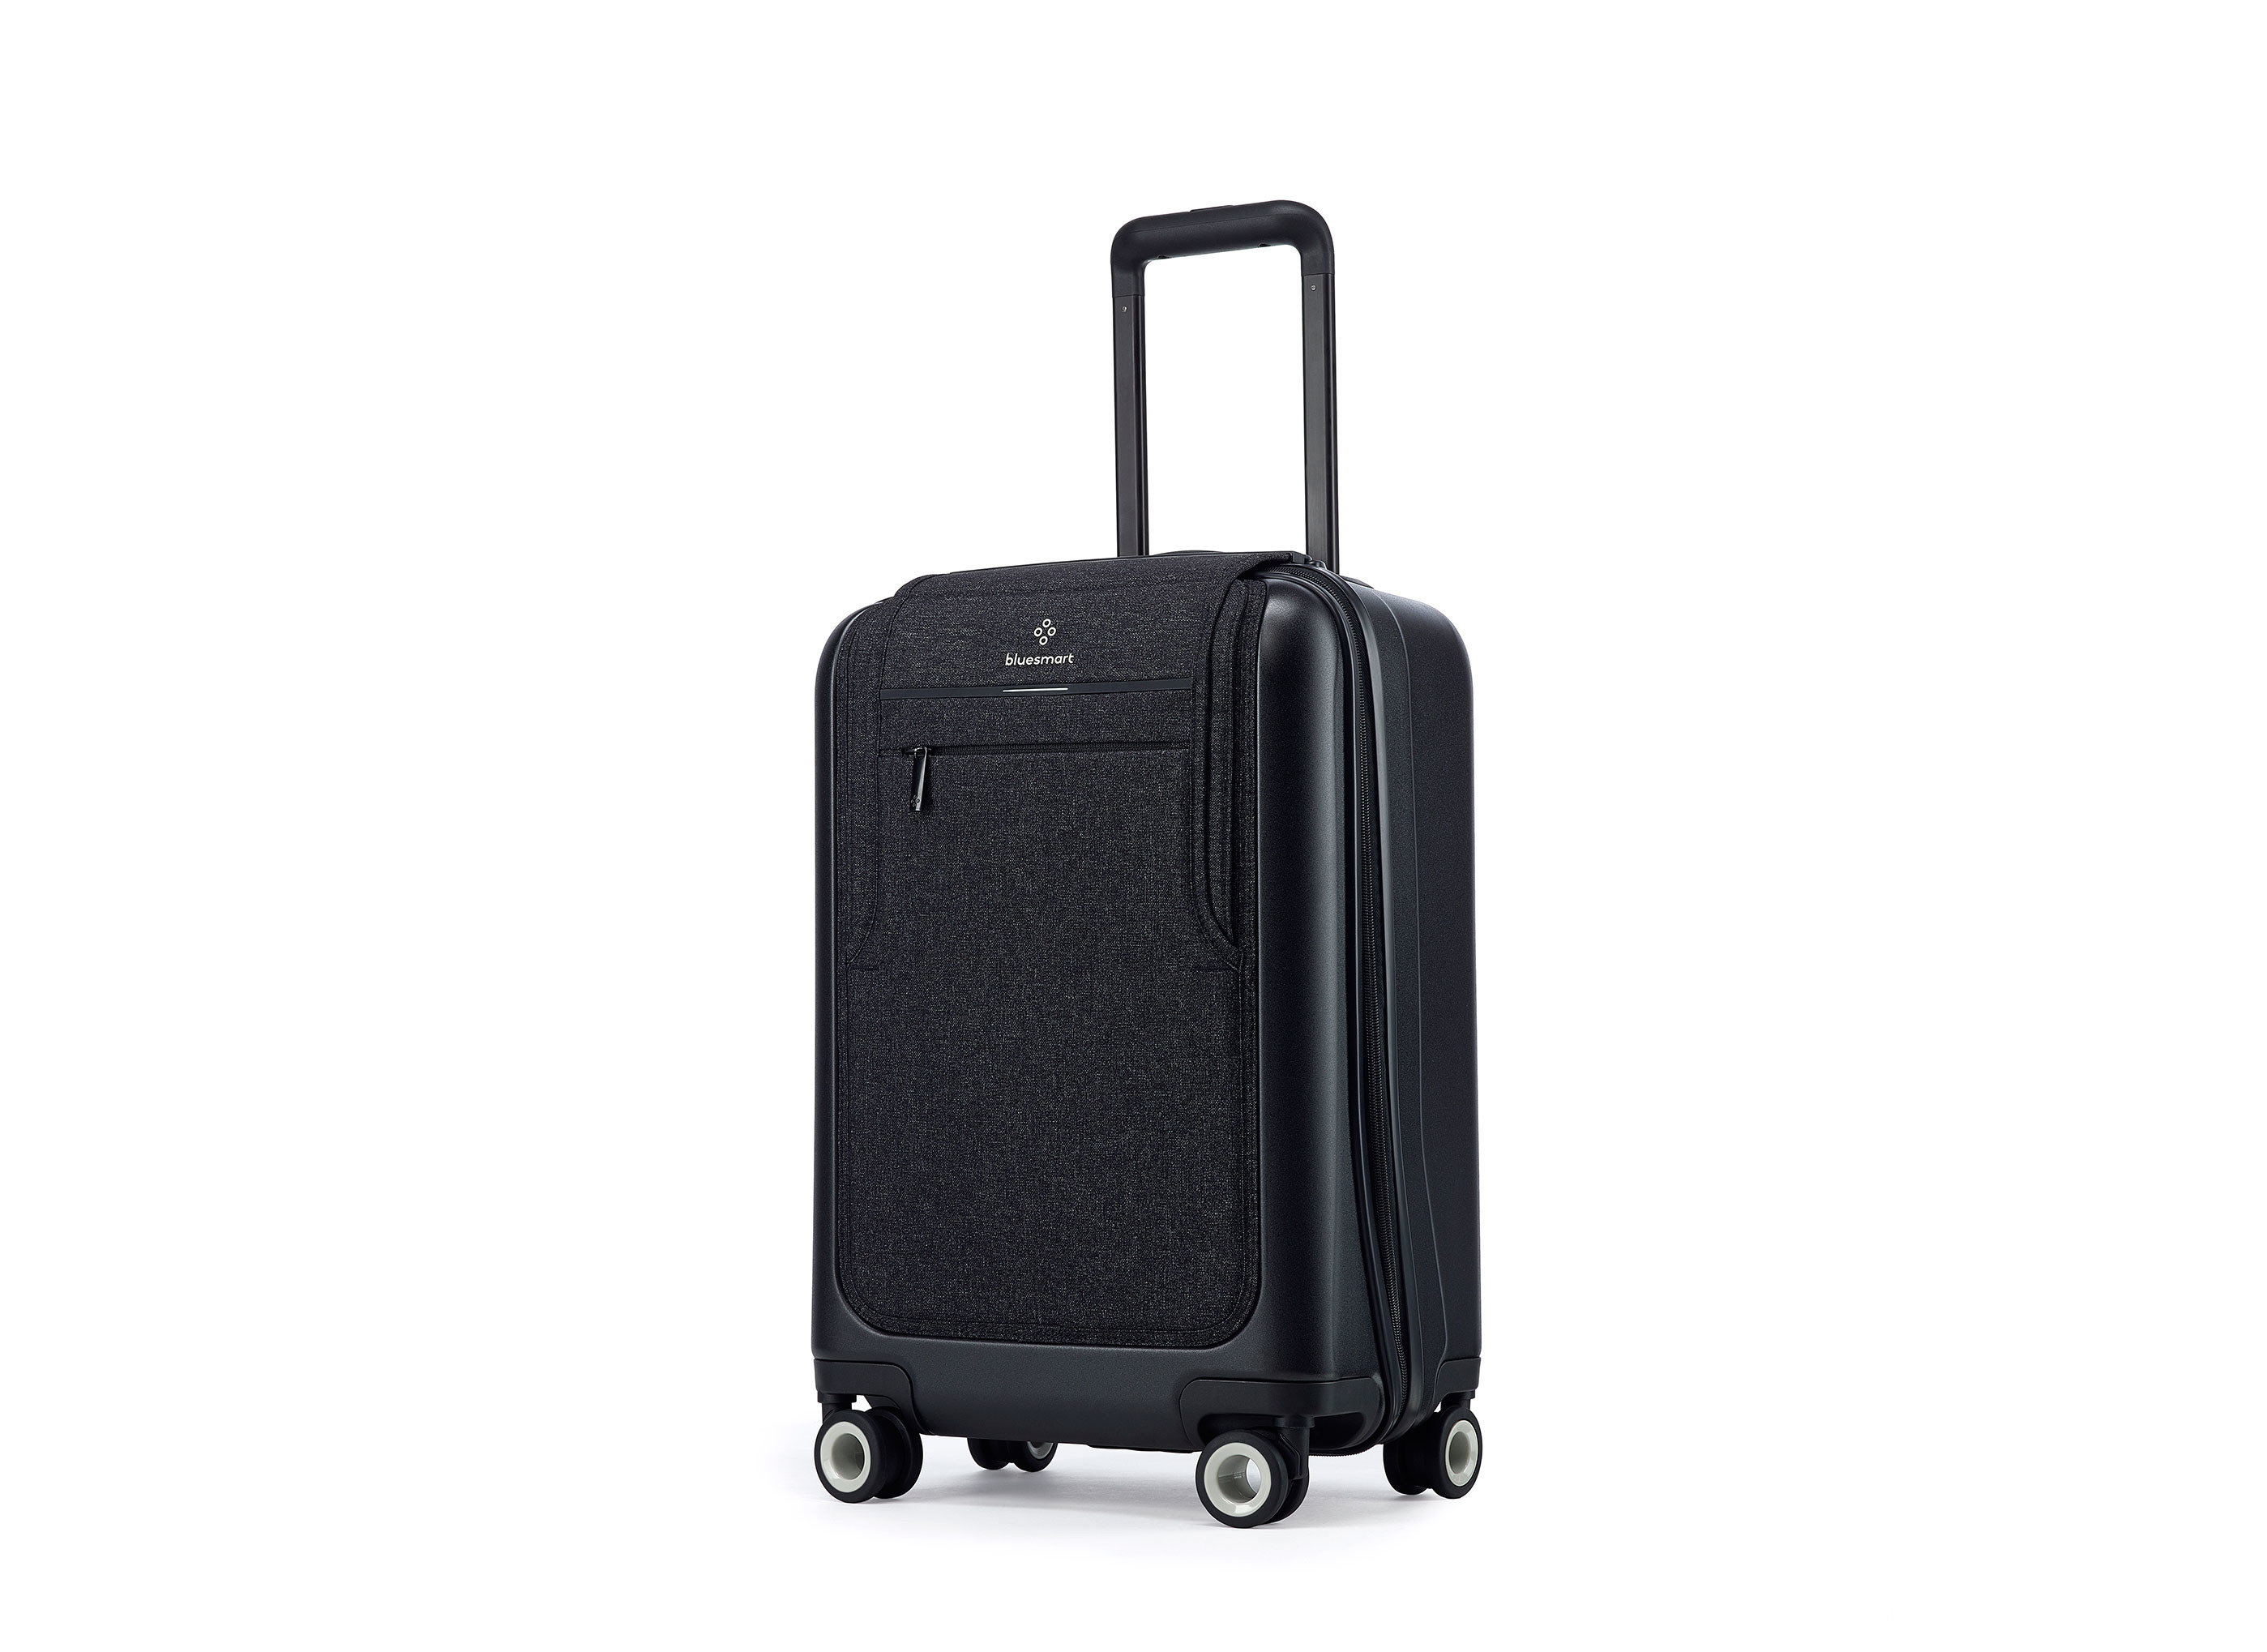 Style + Design luggage suitcase hand luggage bag product piece black leather accessory case colored